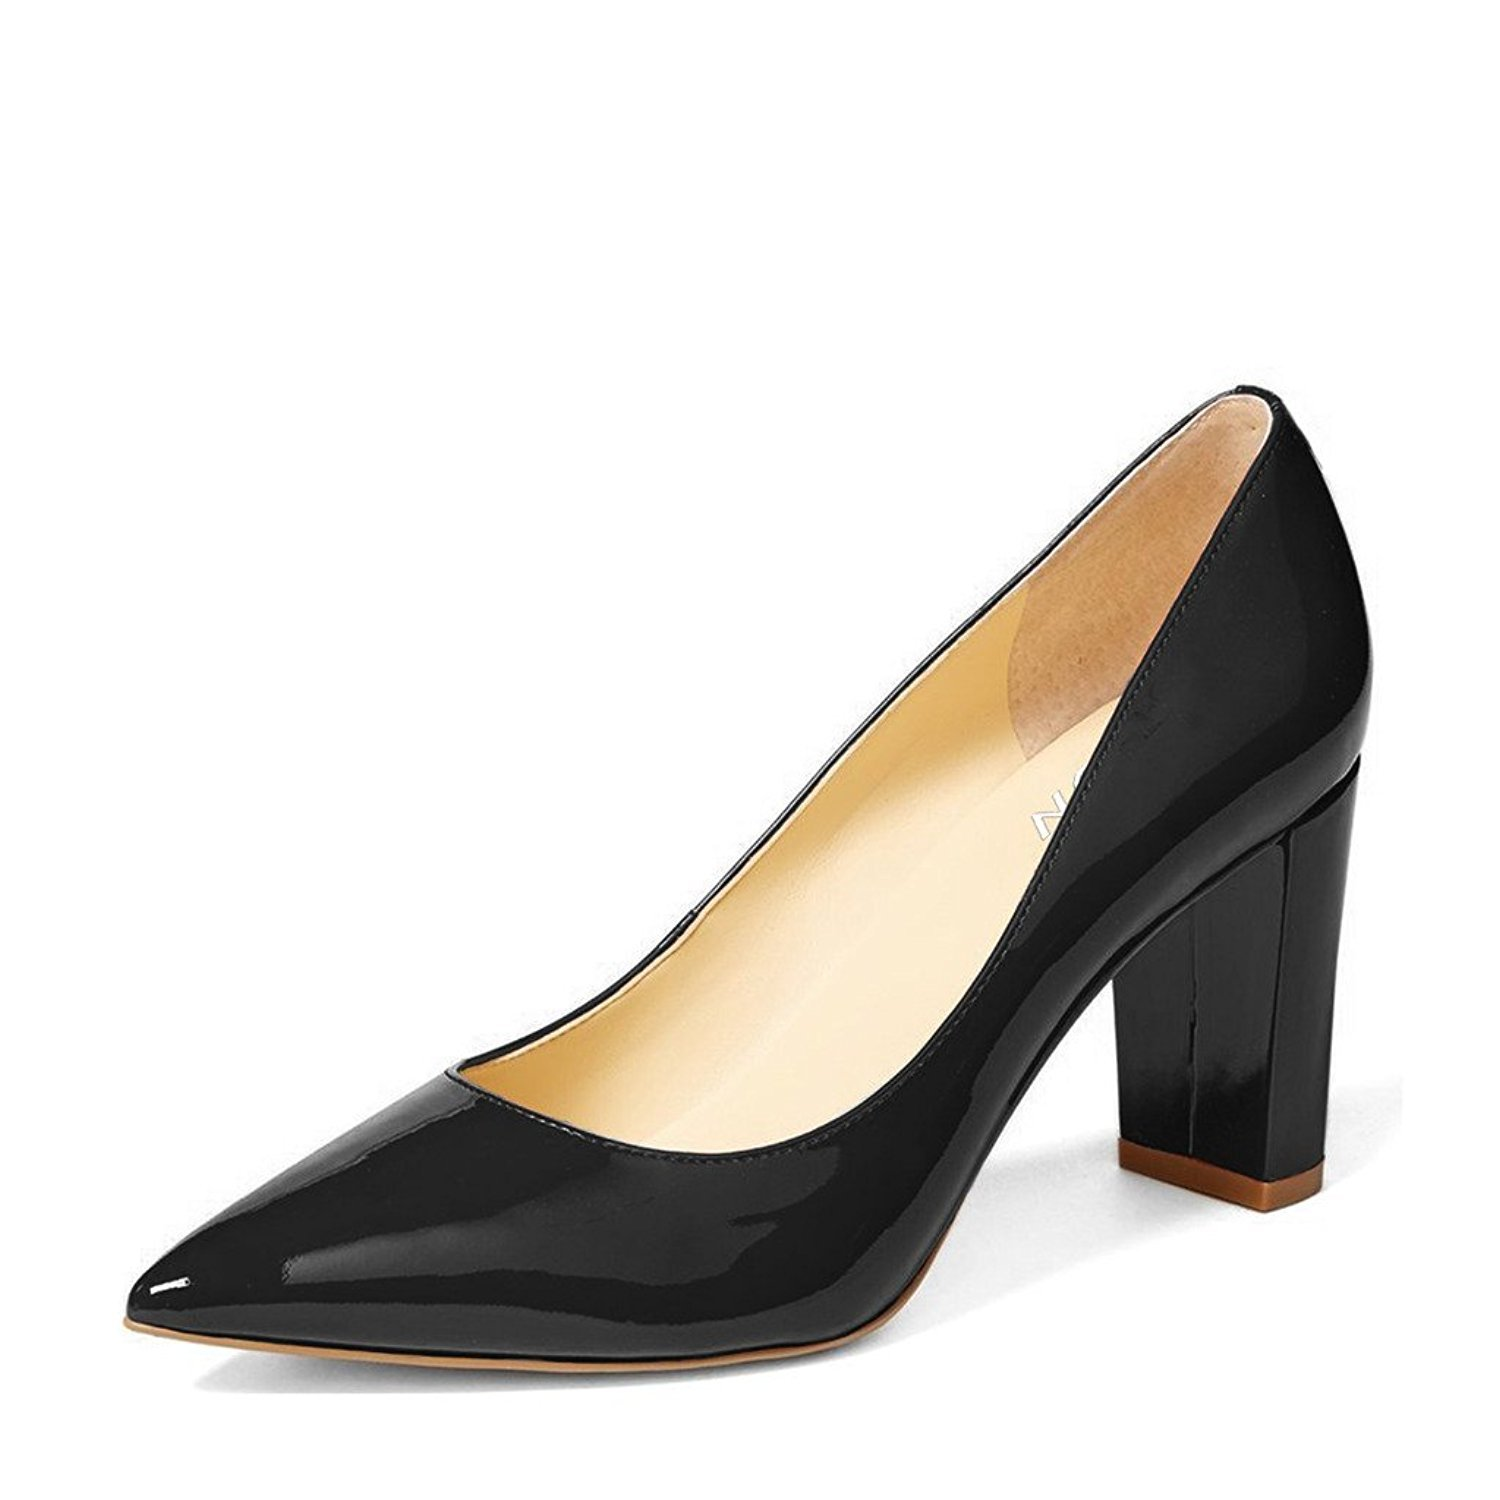 YDN Women's Classic Pointy Toe OL Pumps Slip-On Patent Leather Block Heel Dress Shoes B01MTS7ZS3 6 B(M) US|Black